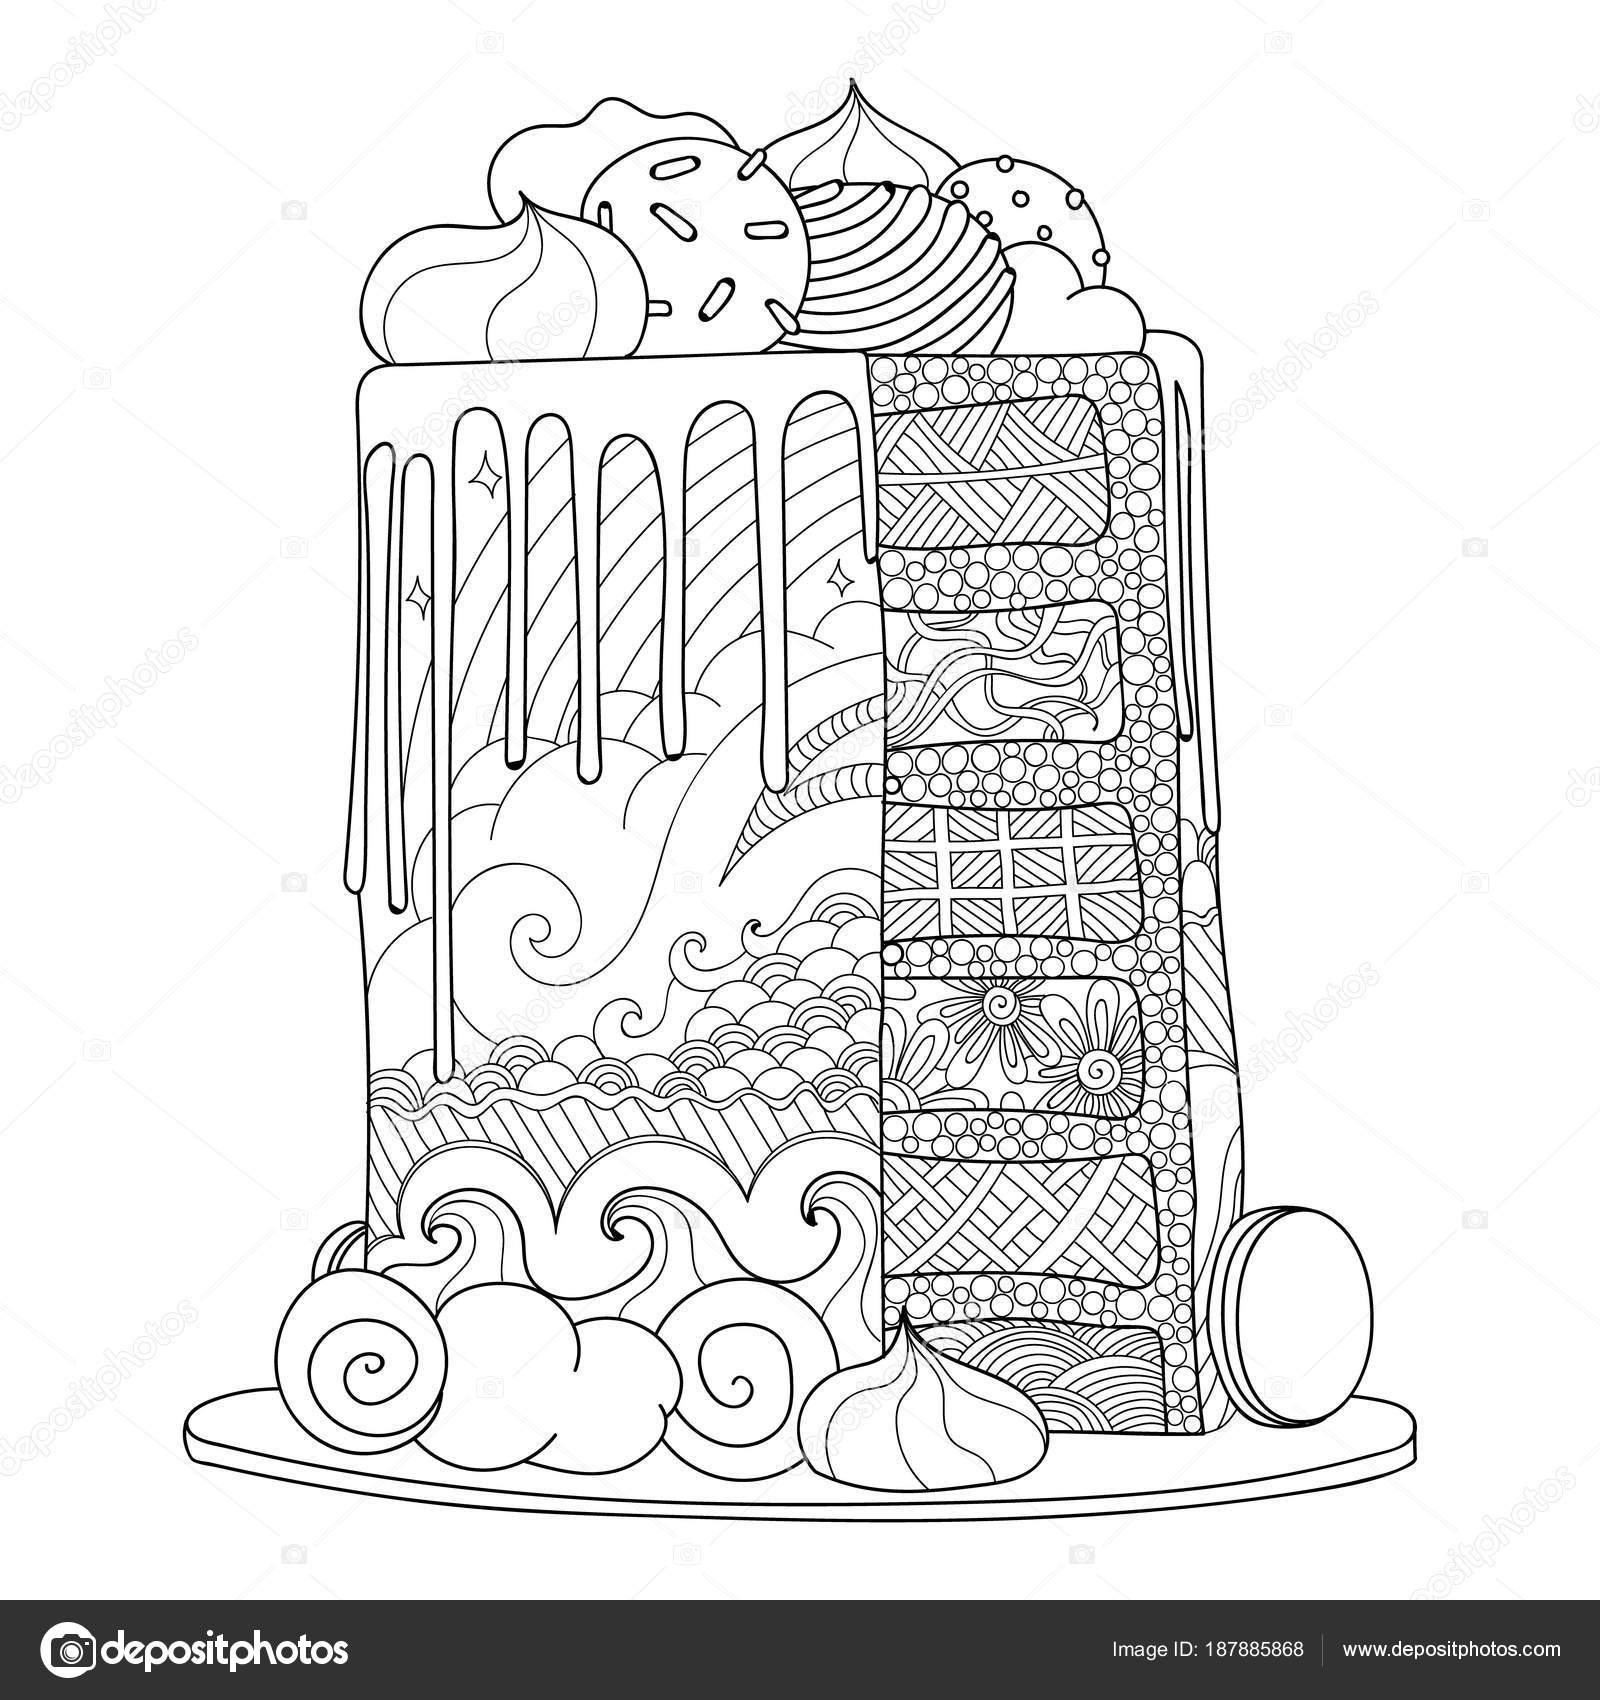 Hand Drawn Doodle Cake Coloring Book Adults Zentangle Style — Stock ...